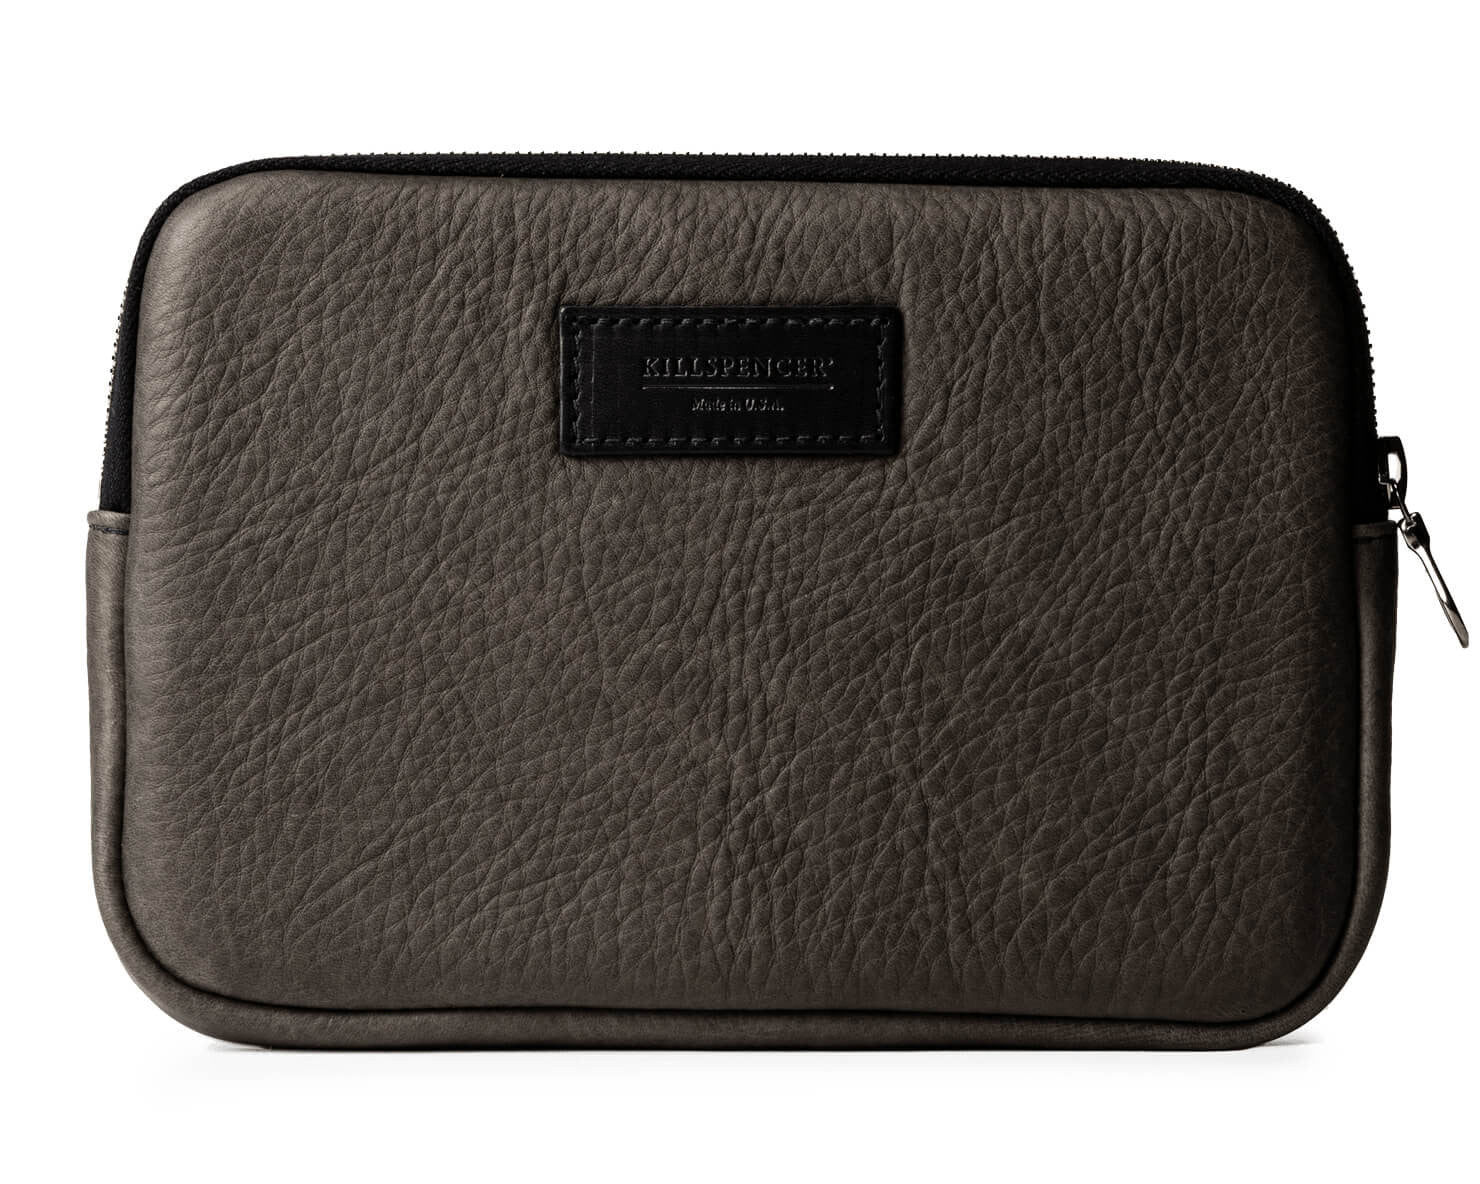 IPAD MINI CASE | KILLSPENCER® - Charcoal Grey Leather